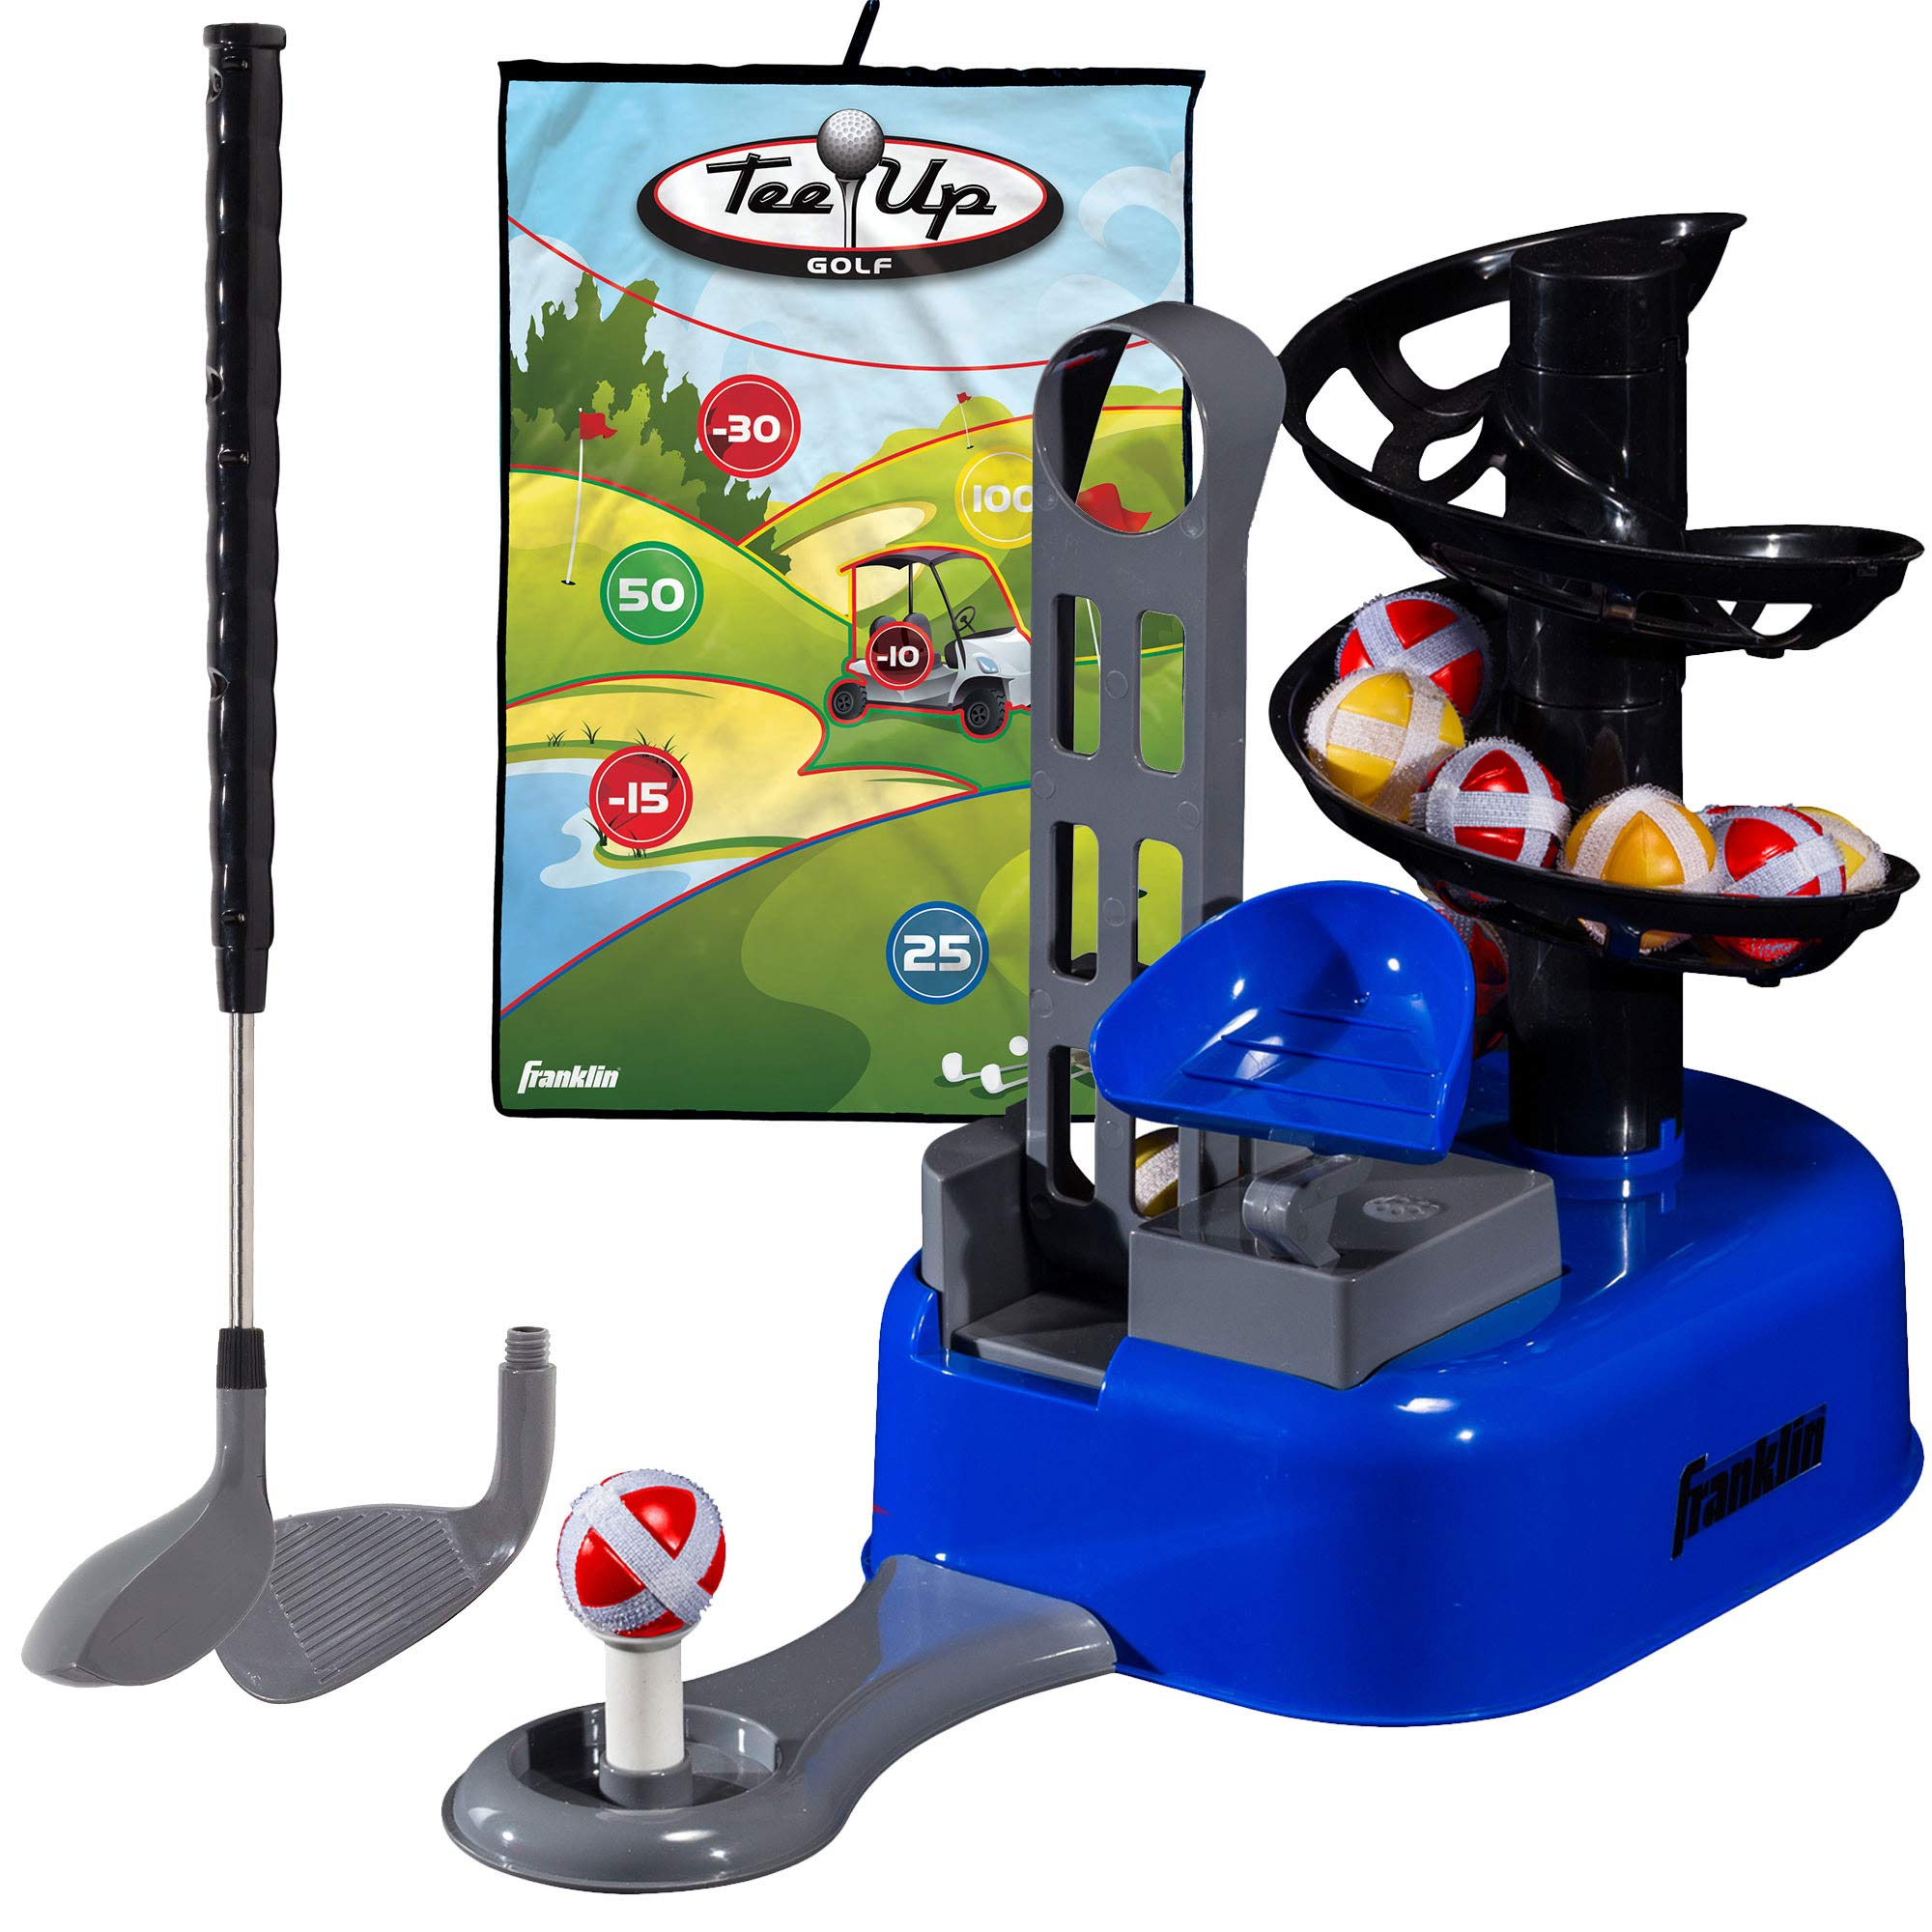 Franklin Sports Kids Golf Set - Tee Up Golf with Target Game by Franklin Sports